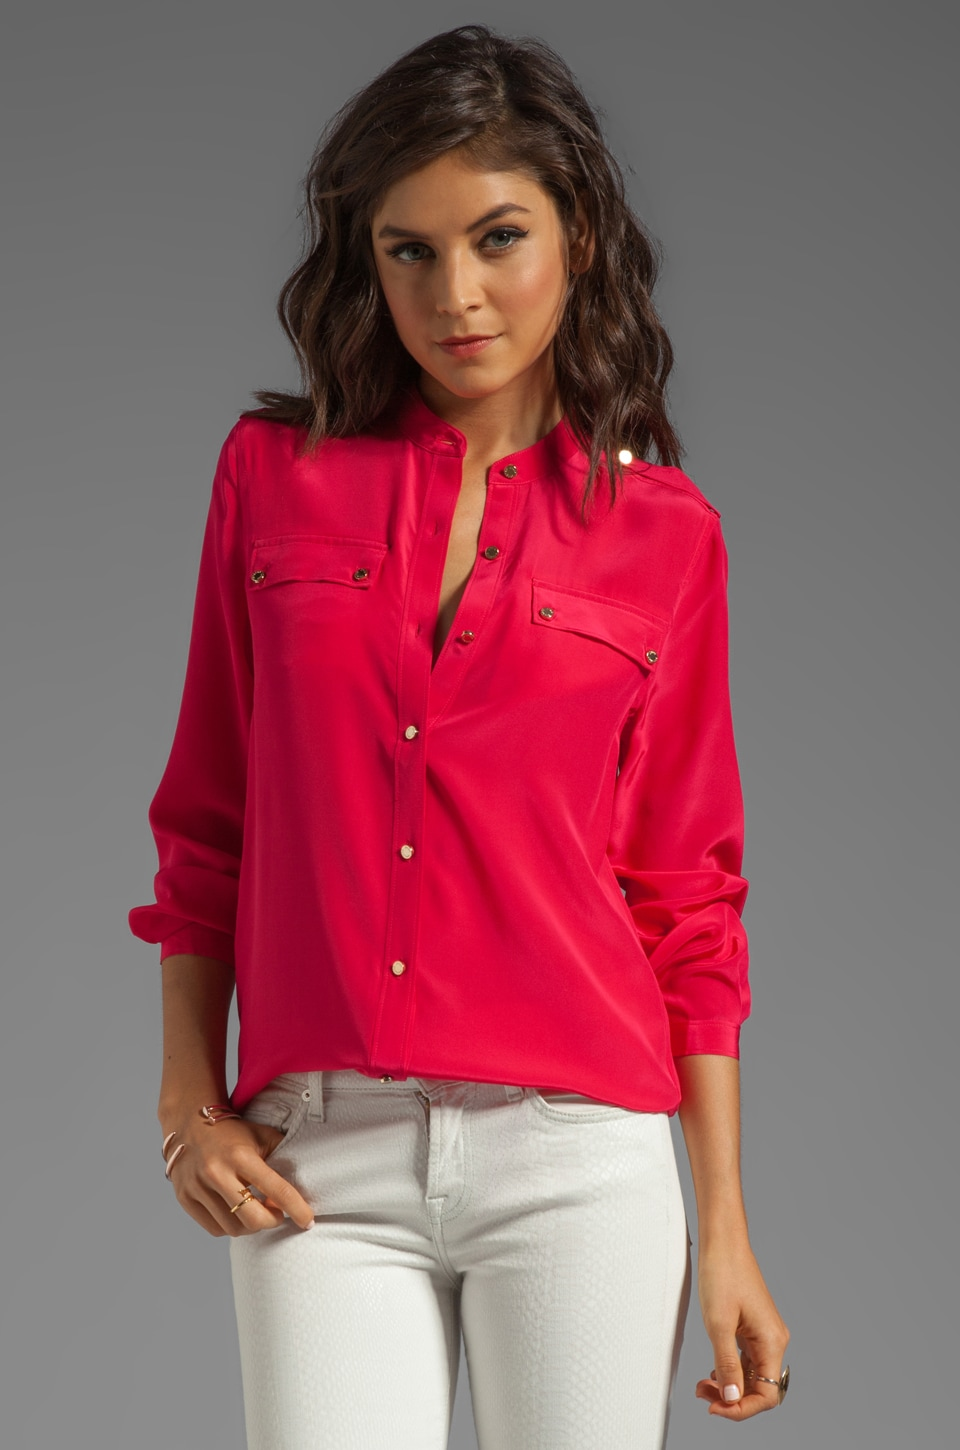 Juicy Couture Boho Dressing Blouse in Hot Cyclamen